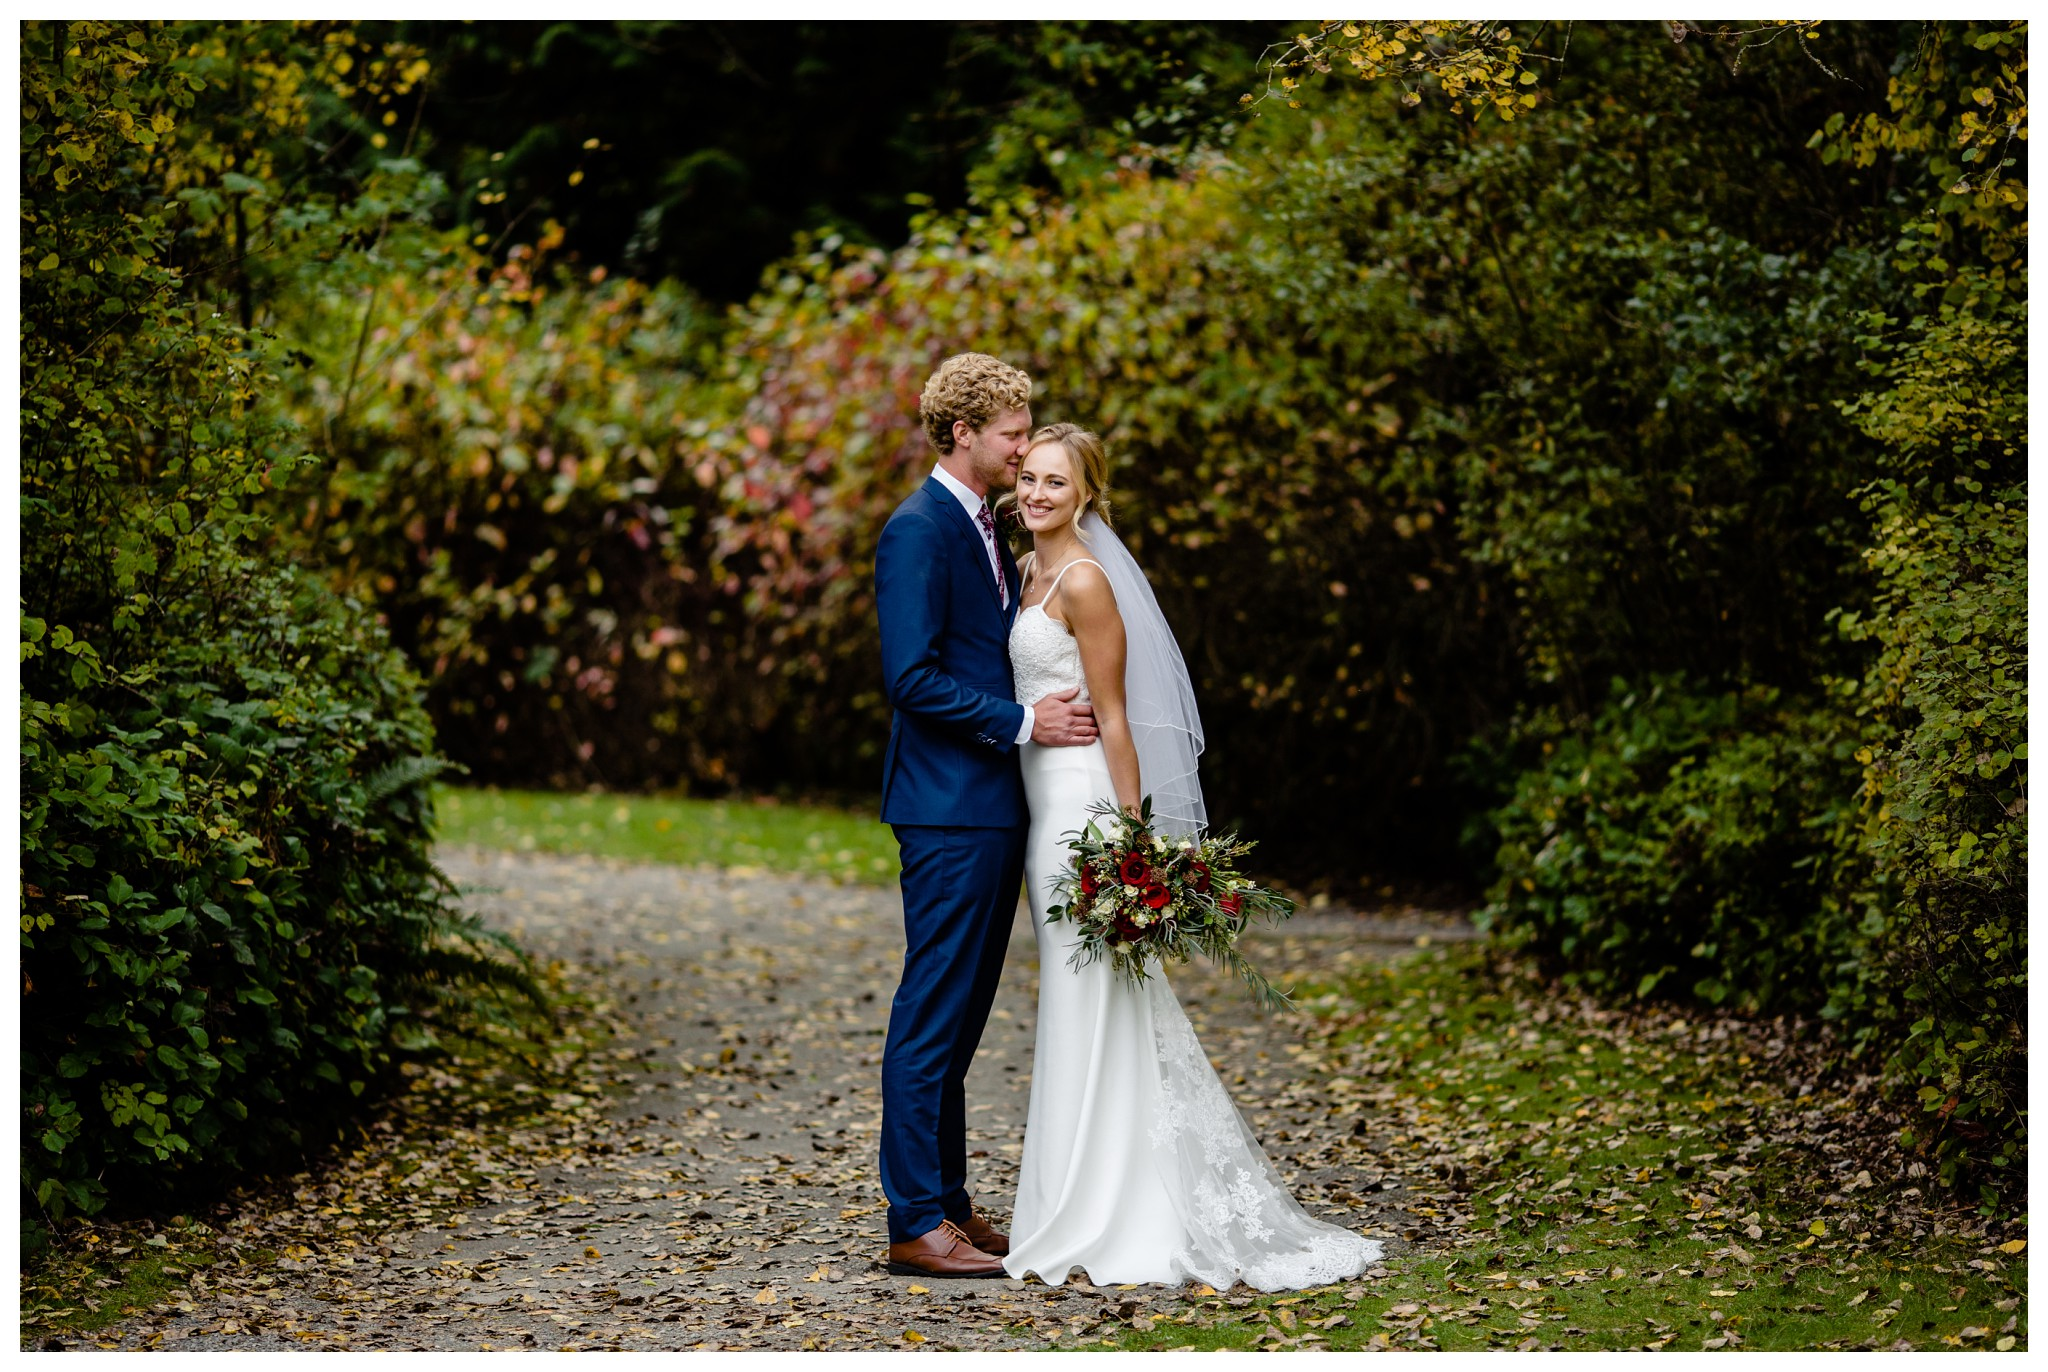 Campbell Valley Park Wedding Photographer Canadian Reformed Church Willoughby Heights Christian Fall Burgundy Navy Roses Wedding_0049.jpg